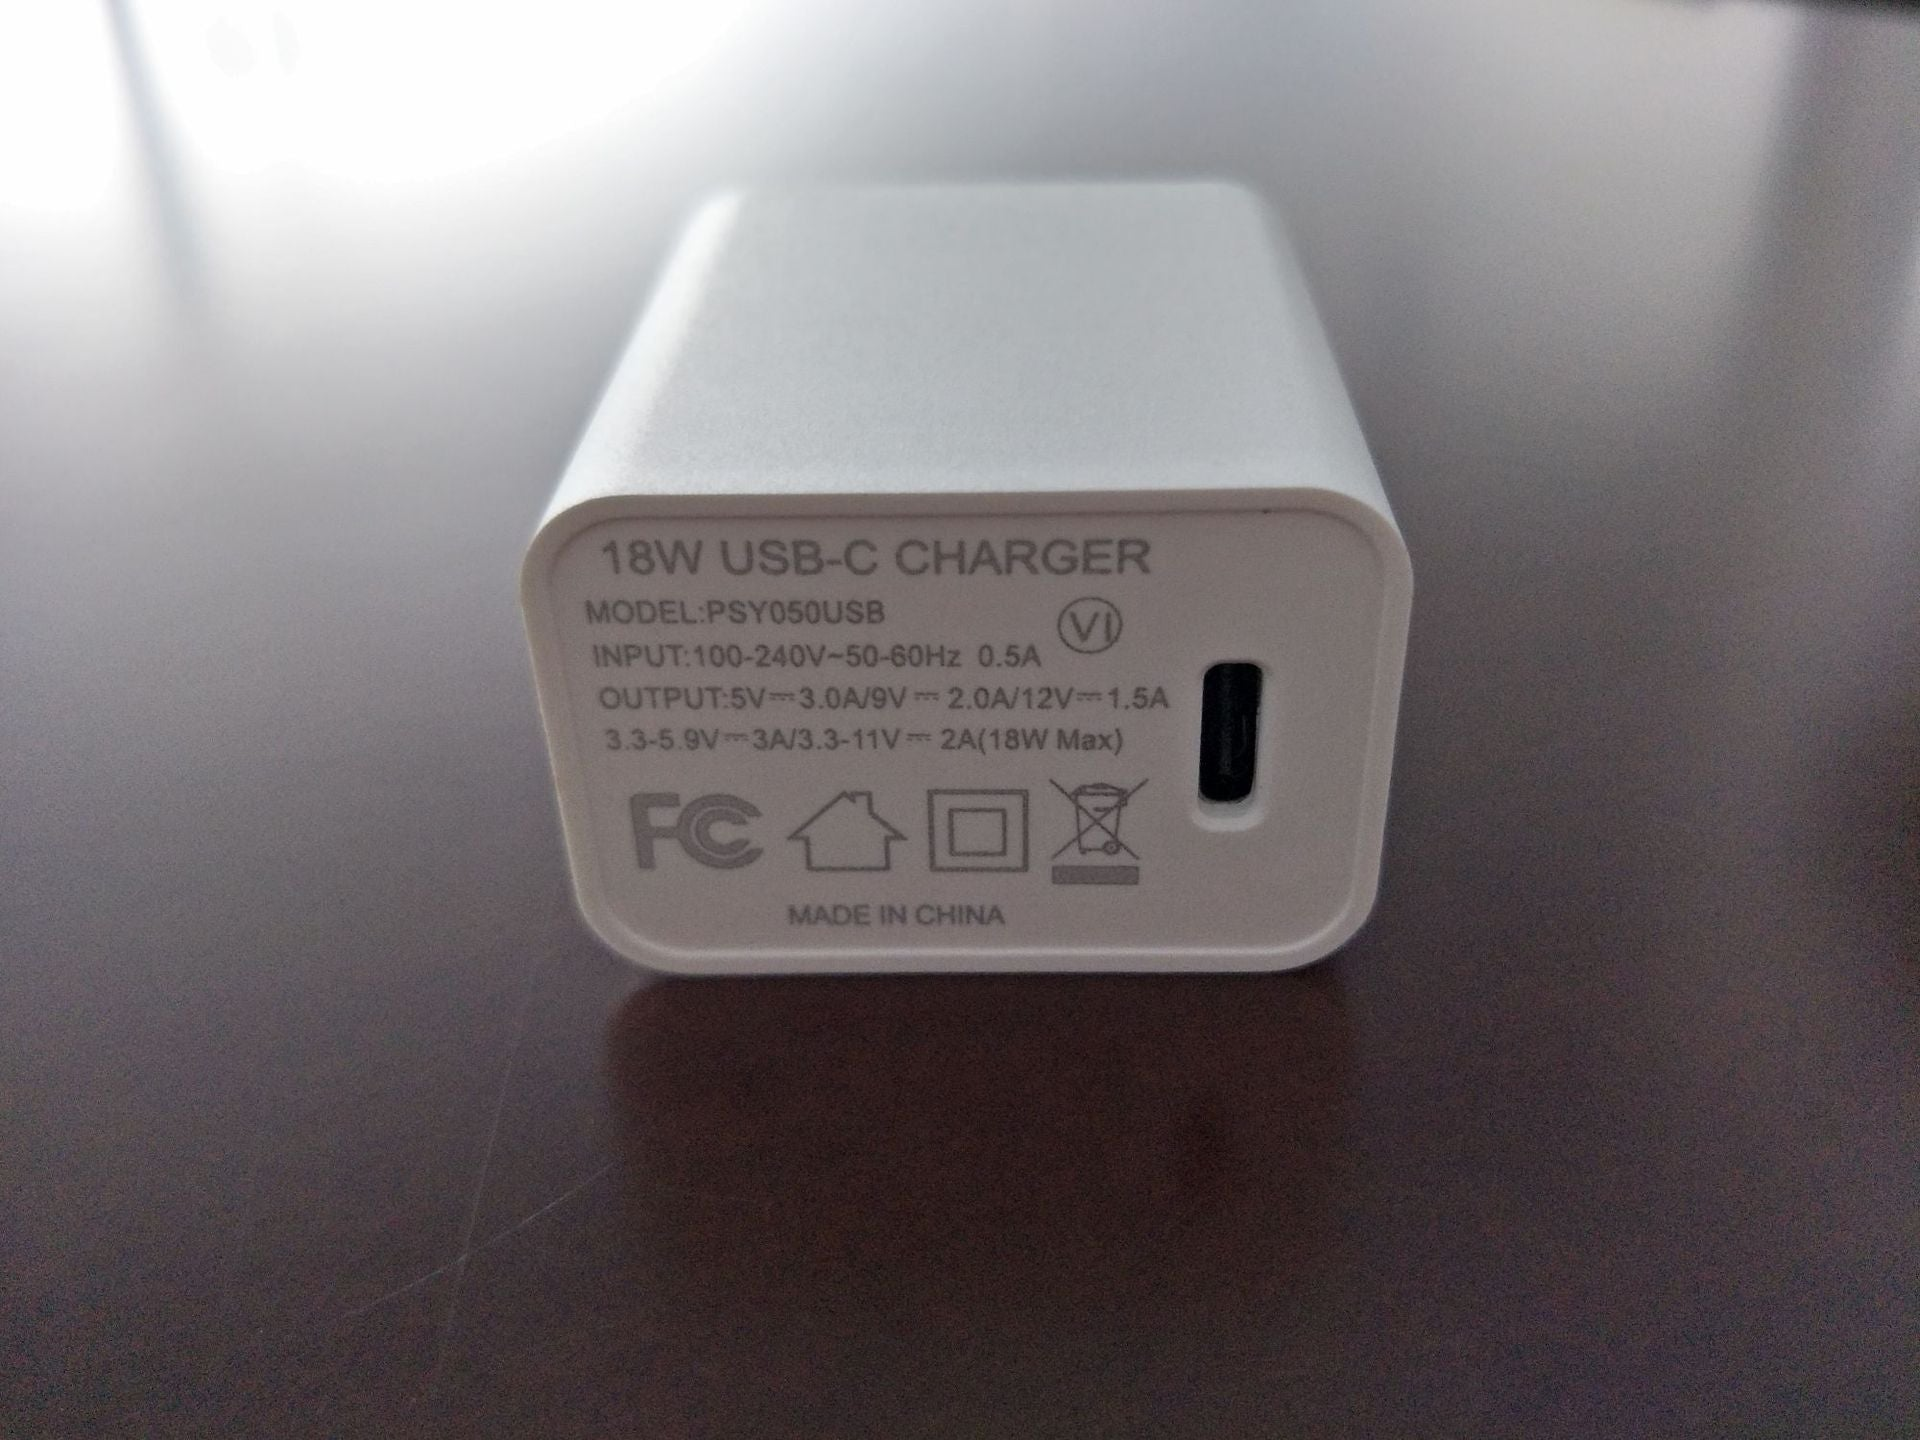 New 18W charger TypeC interface Supports PD protocol Over UL US Class 6 energy efficiency certification